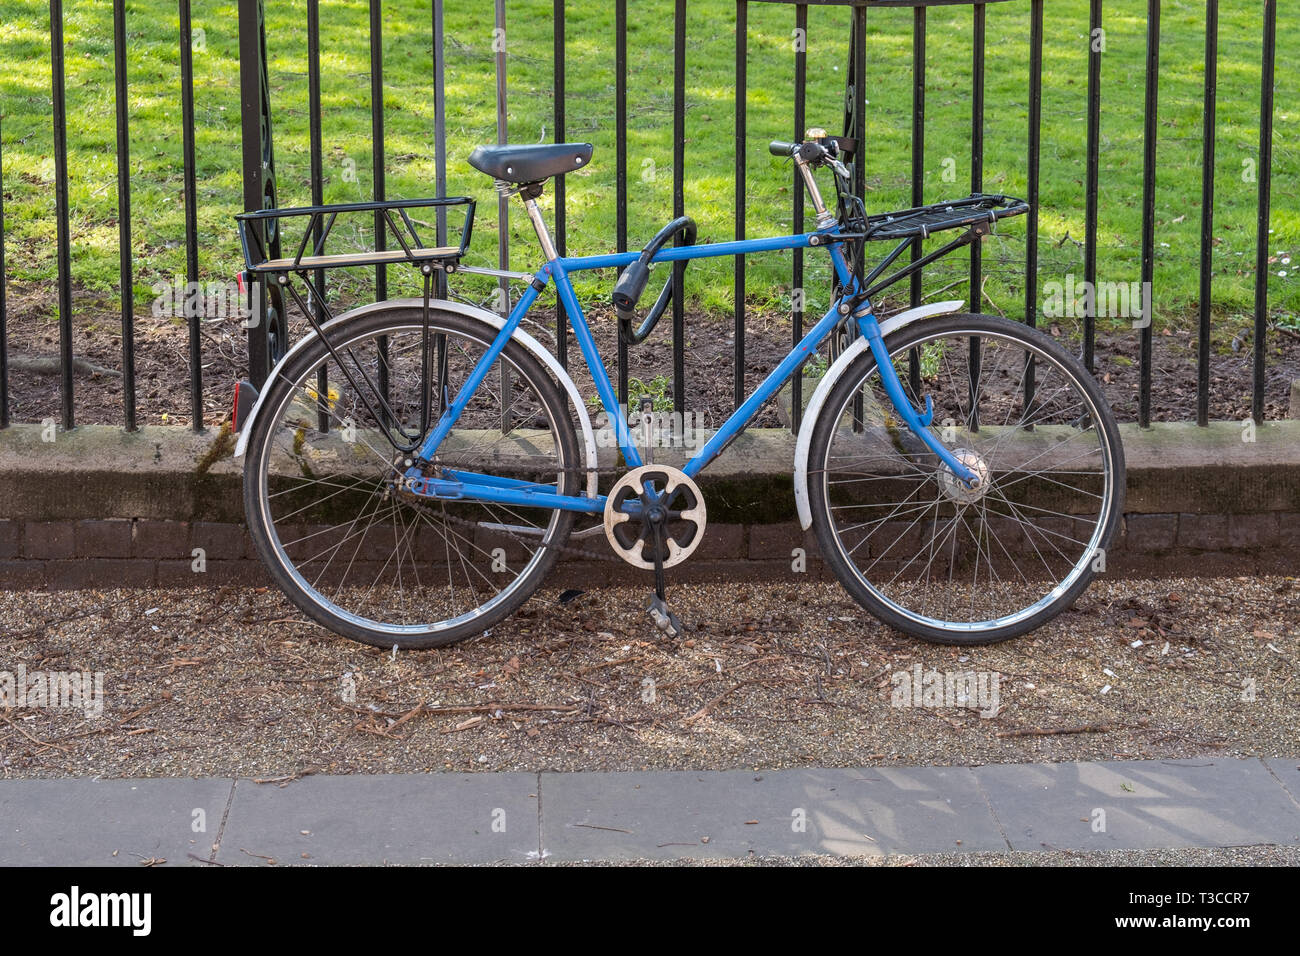 Old blue bicycle leaning against railings in New Walk, Leicester, UK - Stock Image